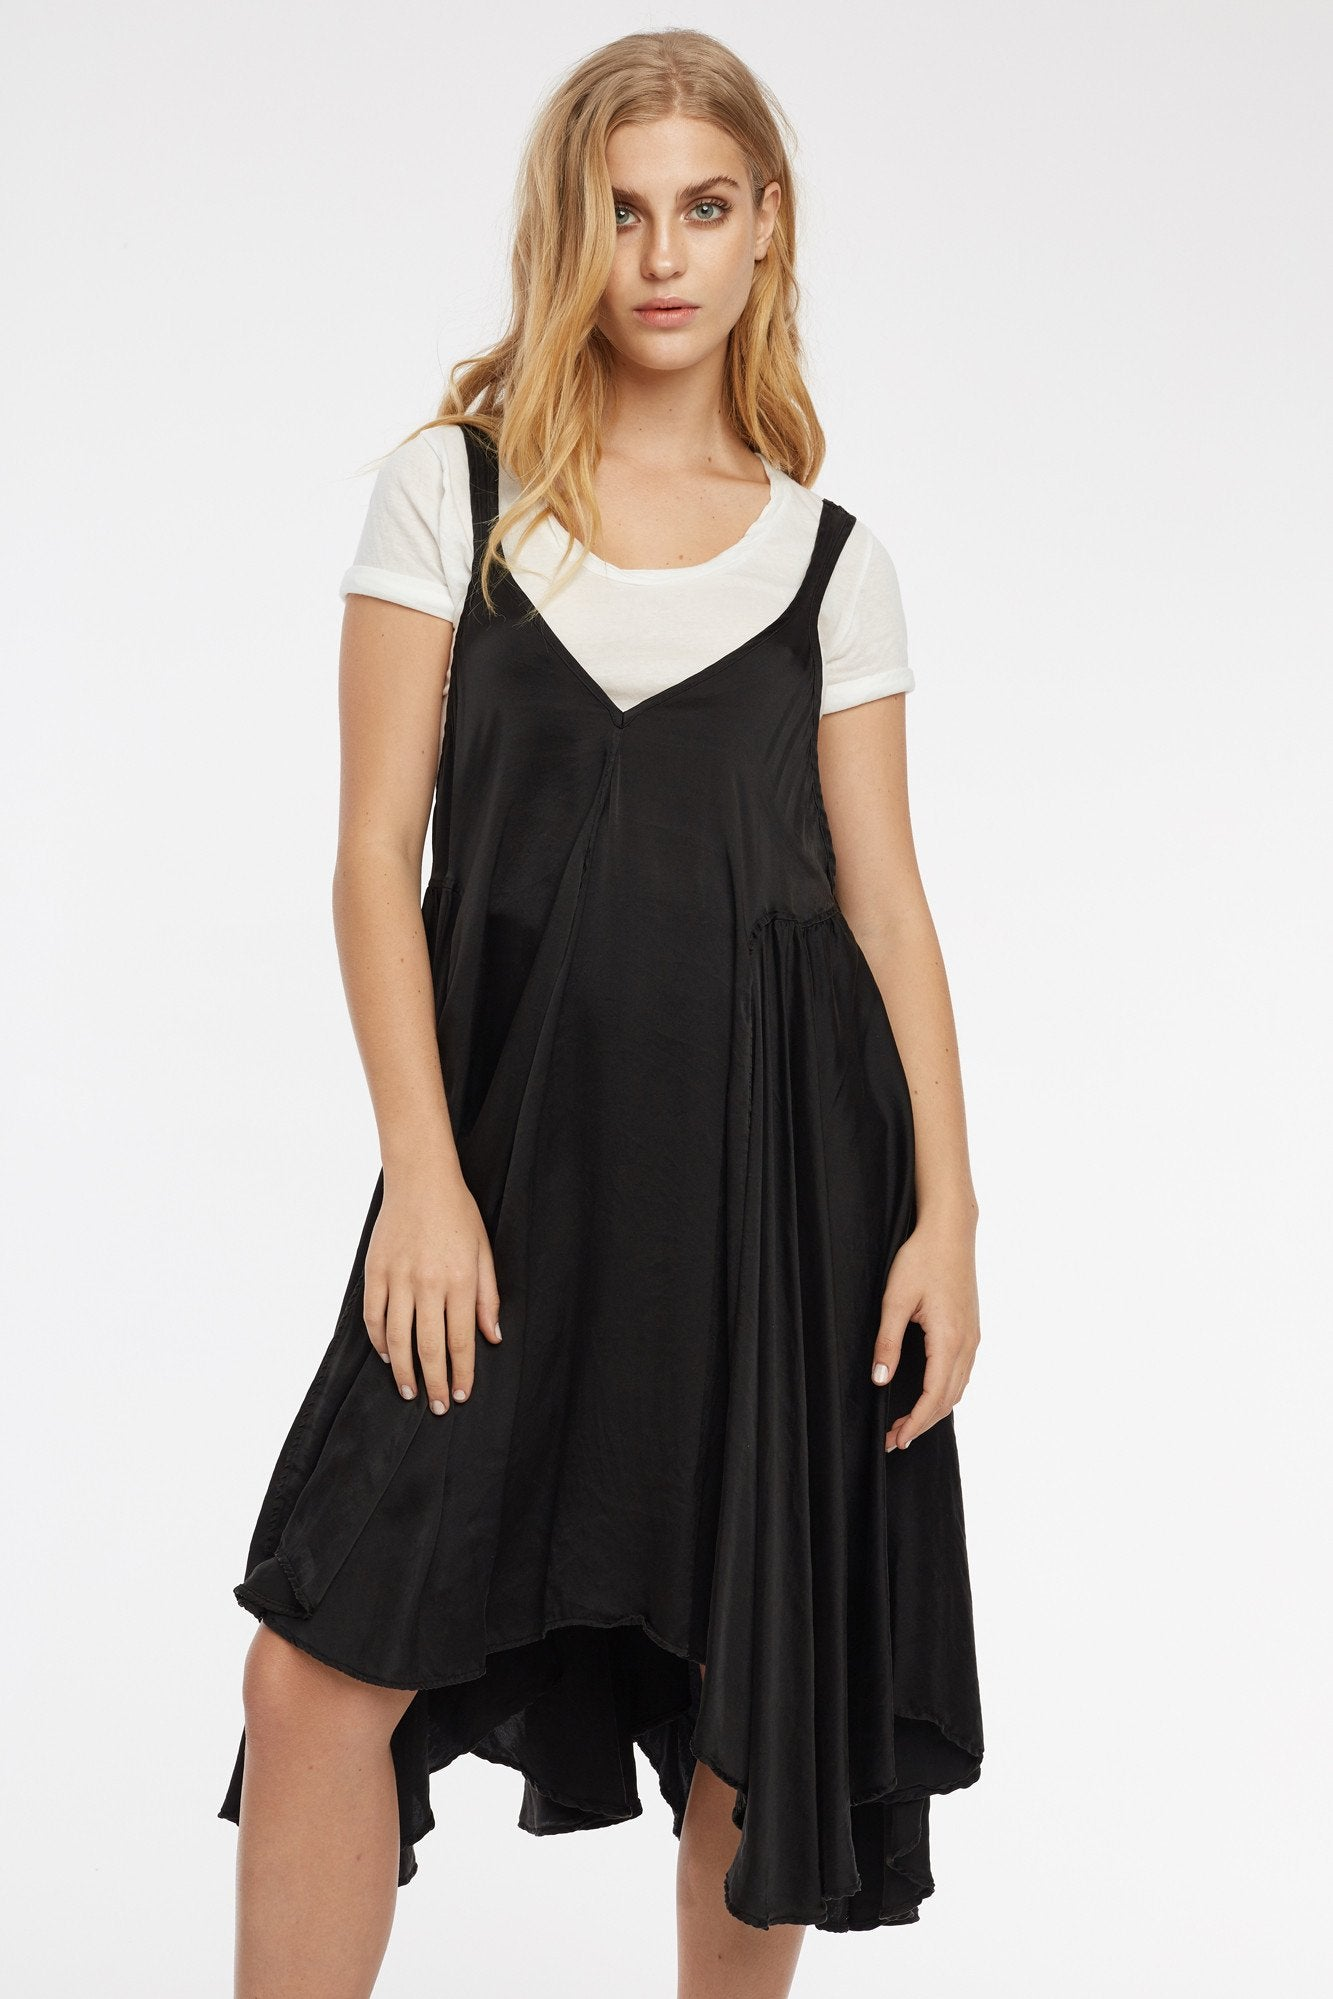 BOCS DRESS - NOIR